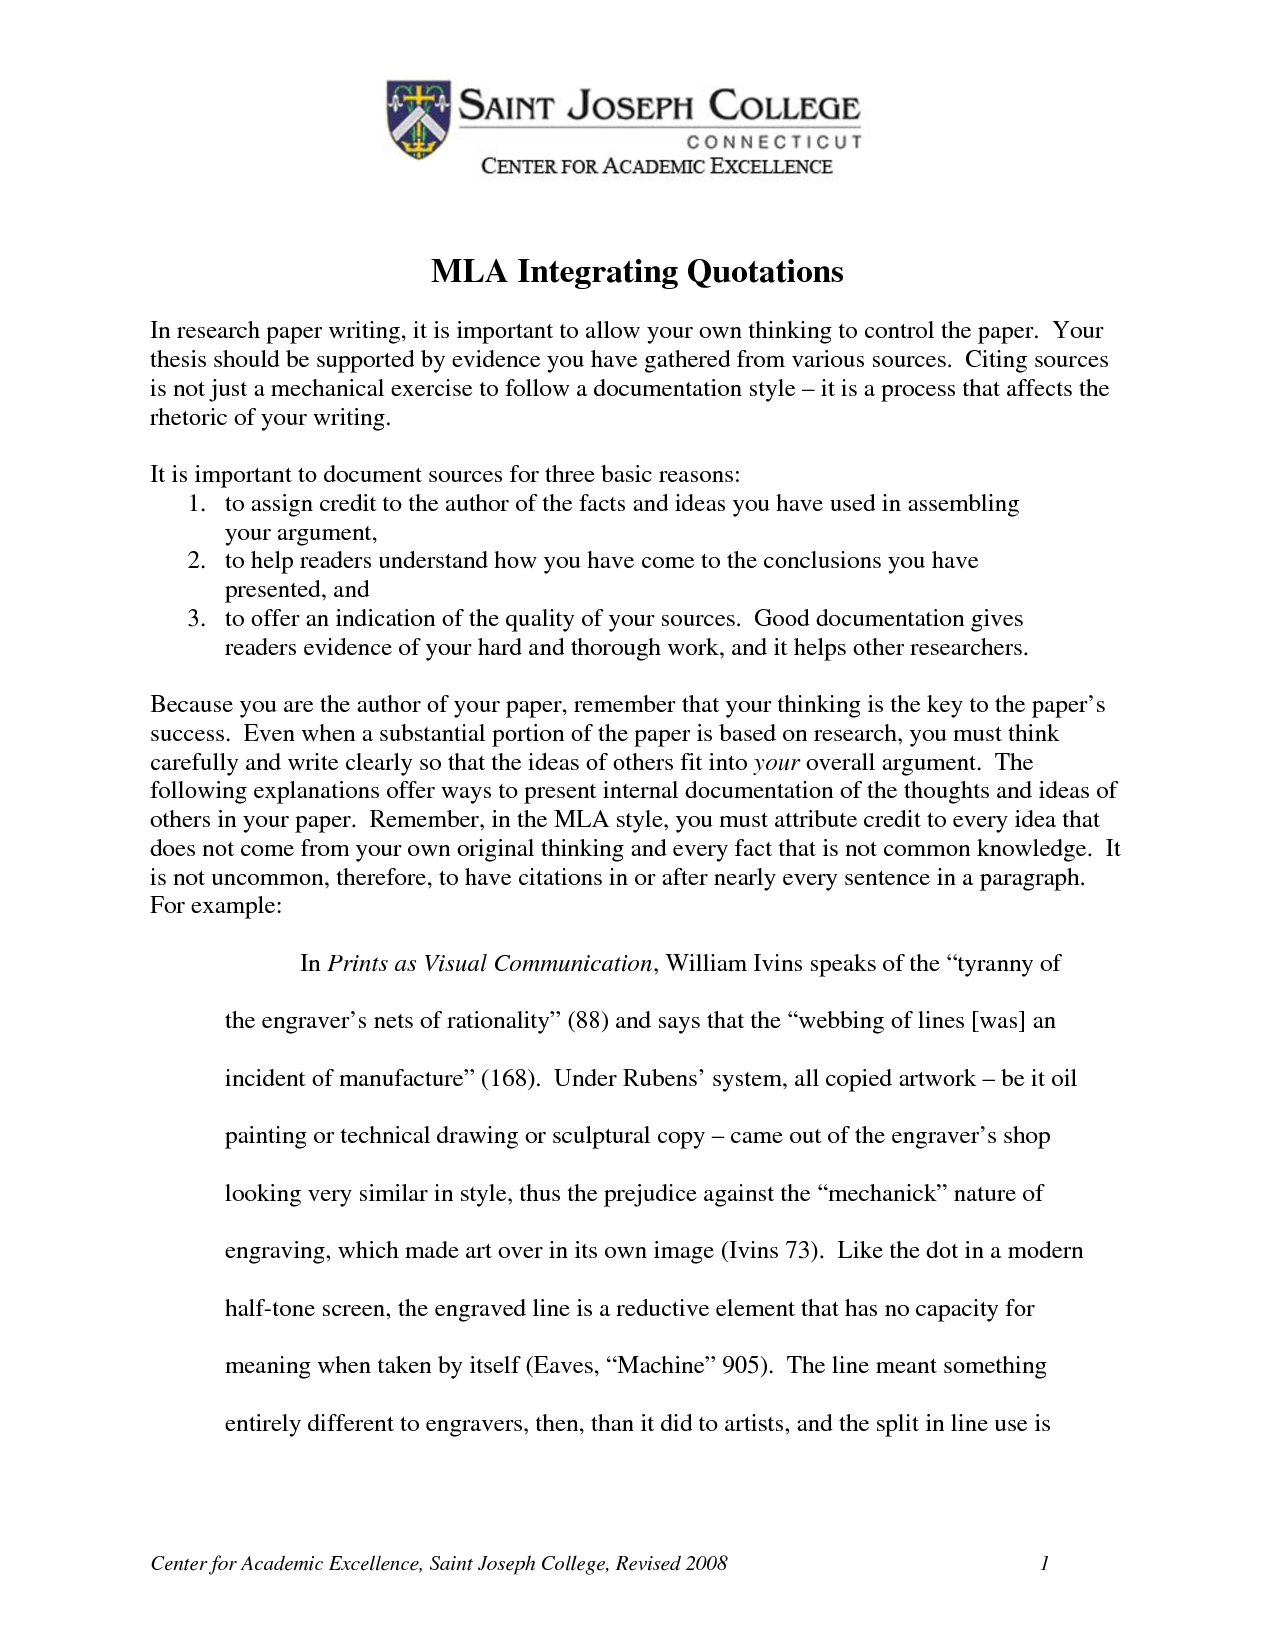 mla format essay with quotes Any time a quote in your paper runs four lines or more, you must use block quote formatting to include it if your teacher will allow it, you can also use block quotes to quote lists block quotes must have an indentation of at least 10 spaces from the left-hand margin and must have a deeper indentation than normal paragraph indents.